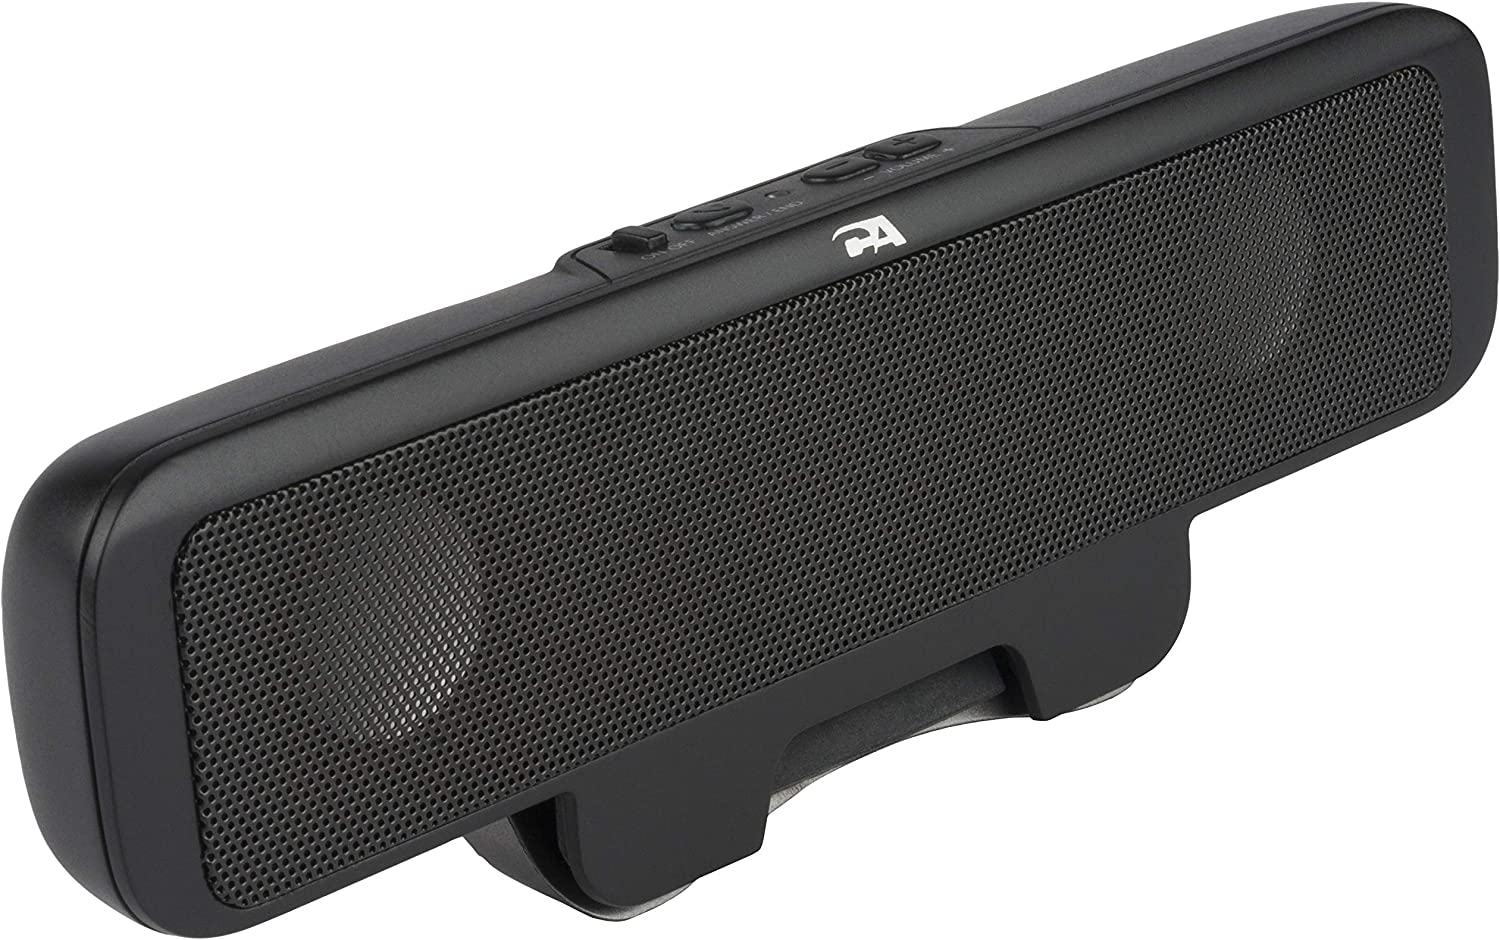 Cyber Acoustics Portable USB Bluetooth Speaker for Laptop Computer -  Clip-On Rechargeable Bluetooth Sound Bar Designed for Laptops,Cell Phones  and